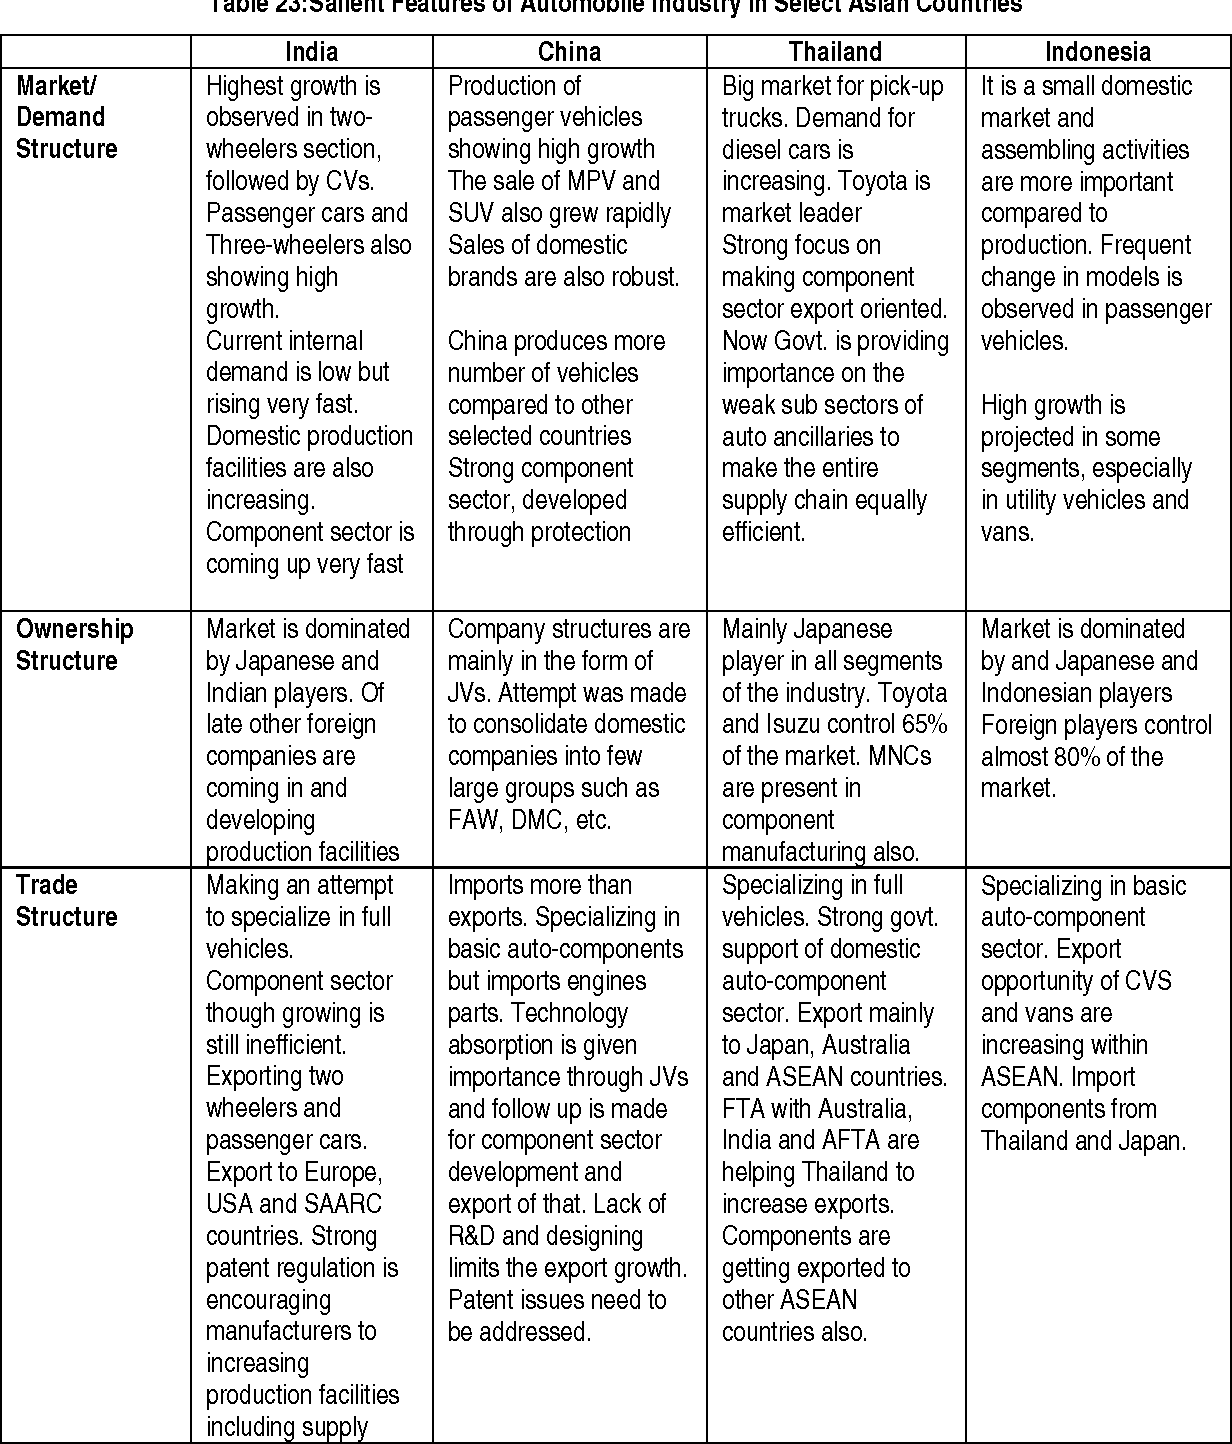 Table 23 from Changing Features of the Automobile Industry